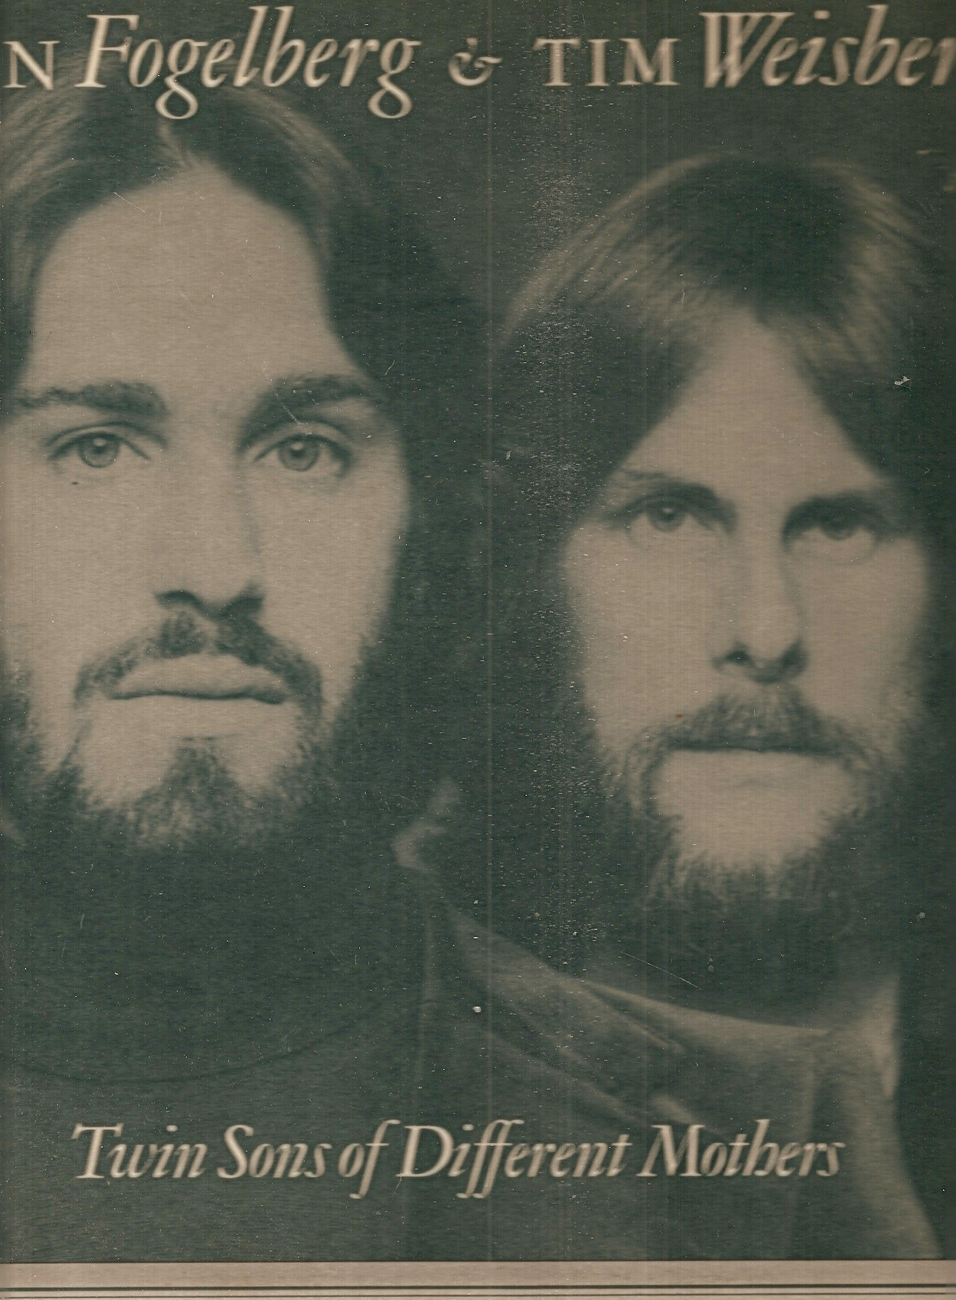 Primary image for LP--Fogelberg, Dan & Tim Weisbert 	Twins Sons Of Different Mothers